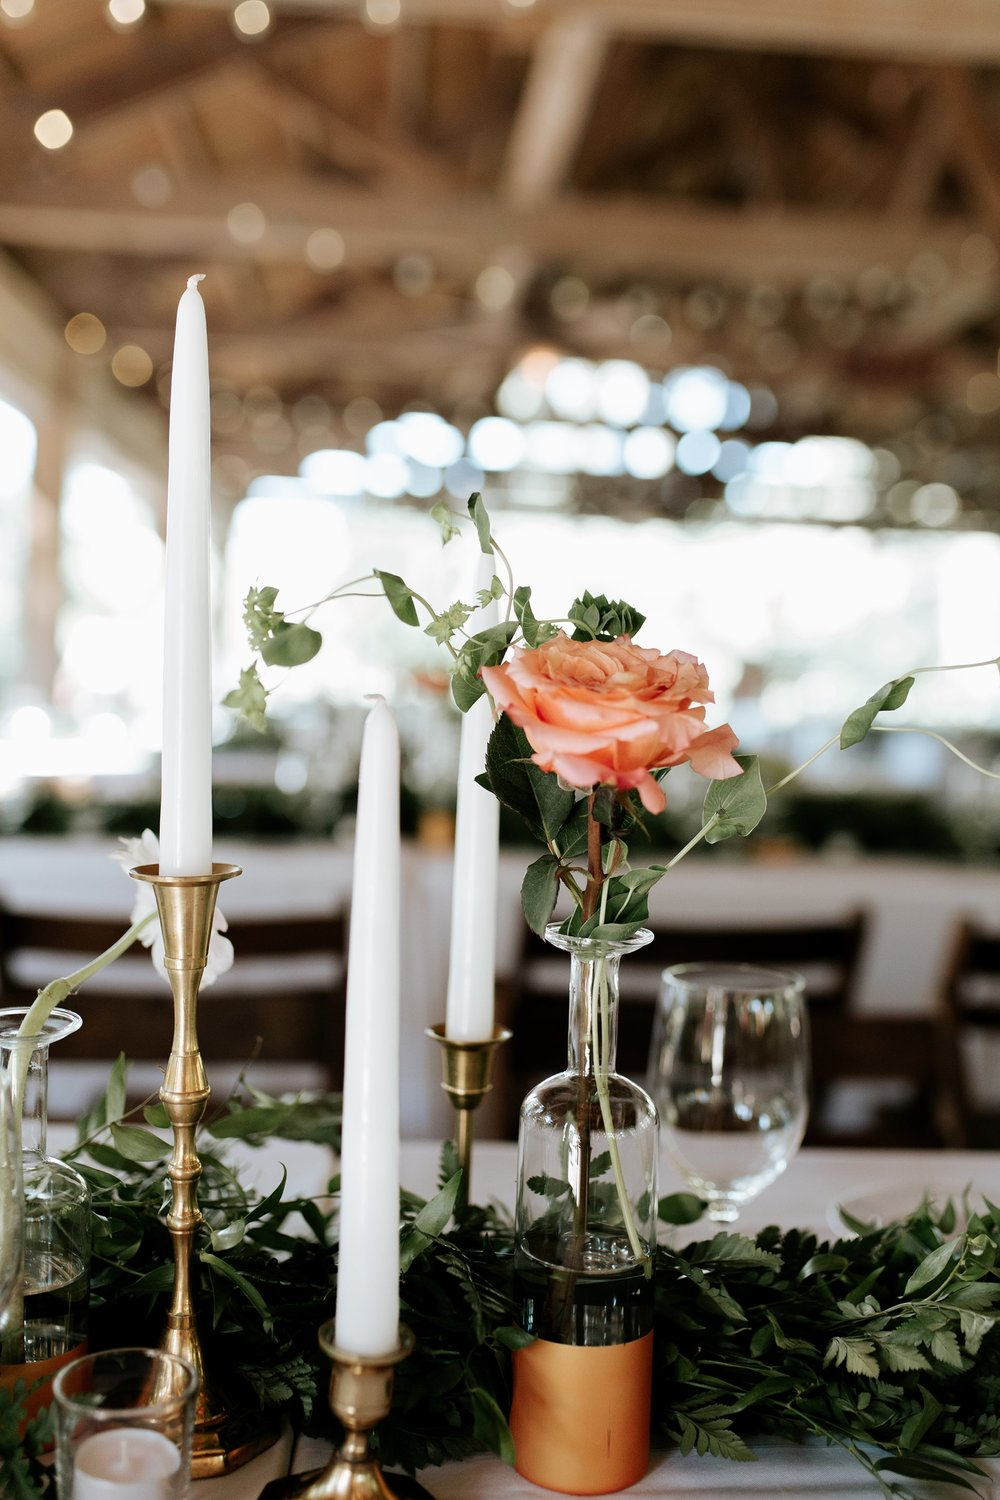 lowcountry-kitchen-catering-beaufort-sc-mary-grace-and-judd-kennedy-wedding-ceremony-candles-min.jpg